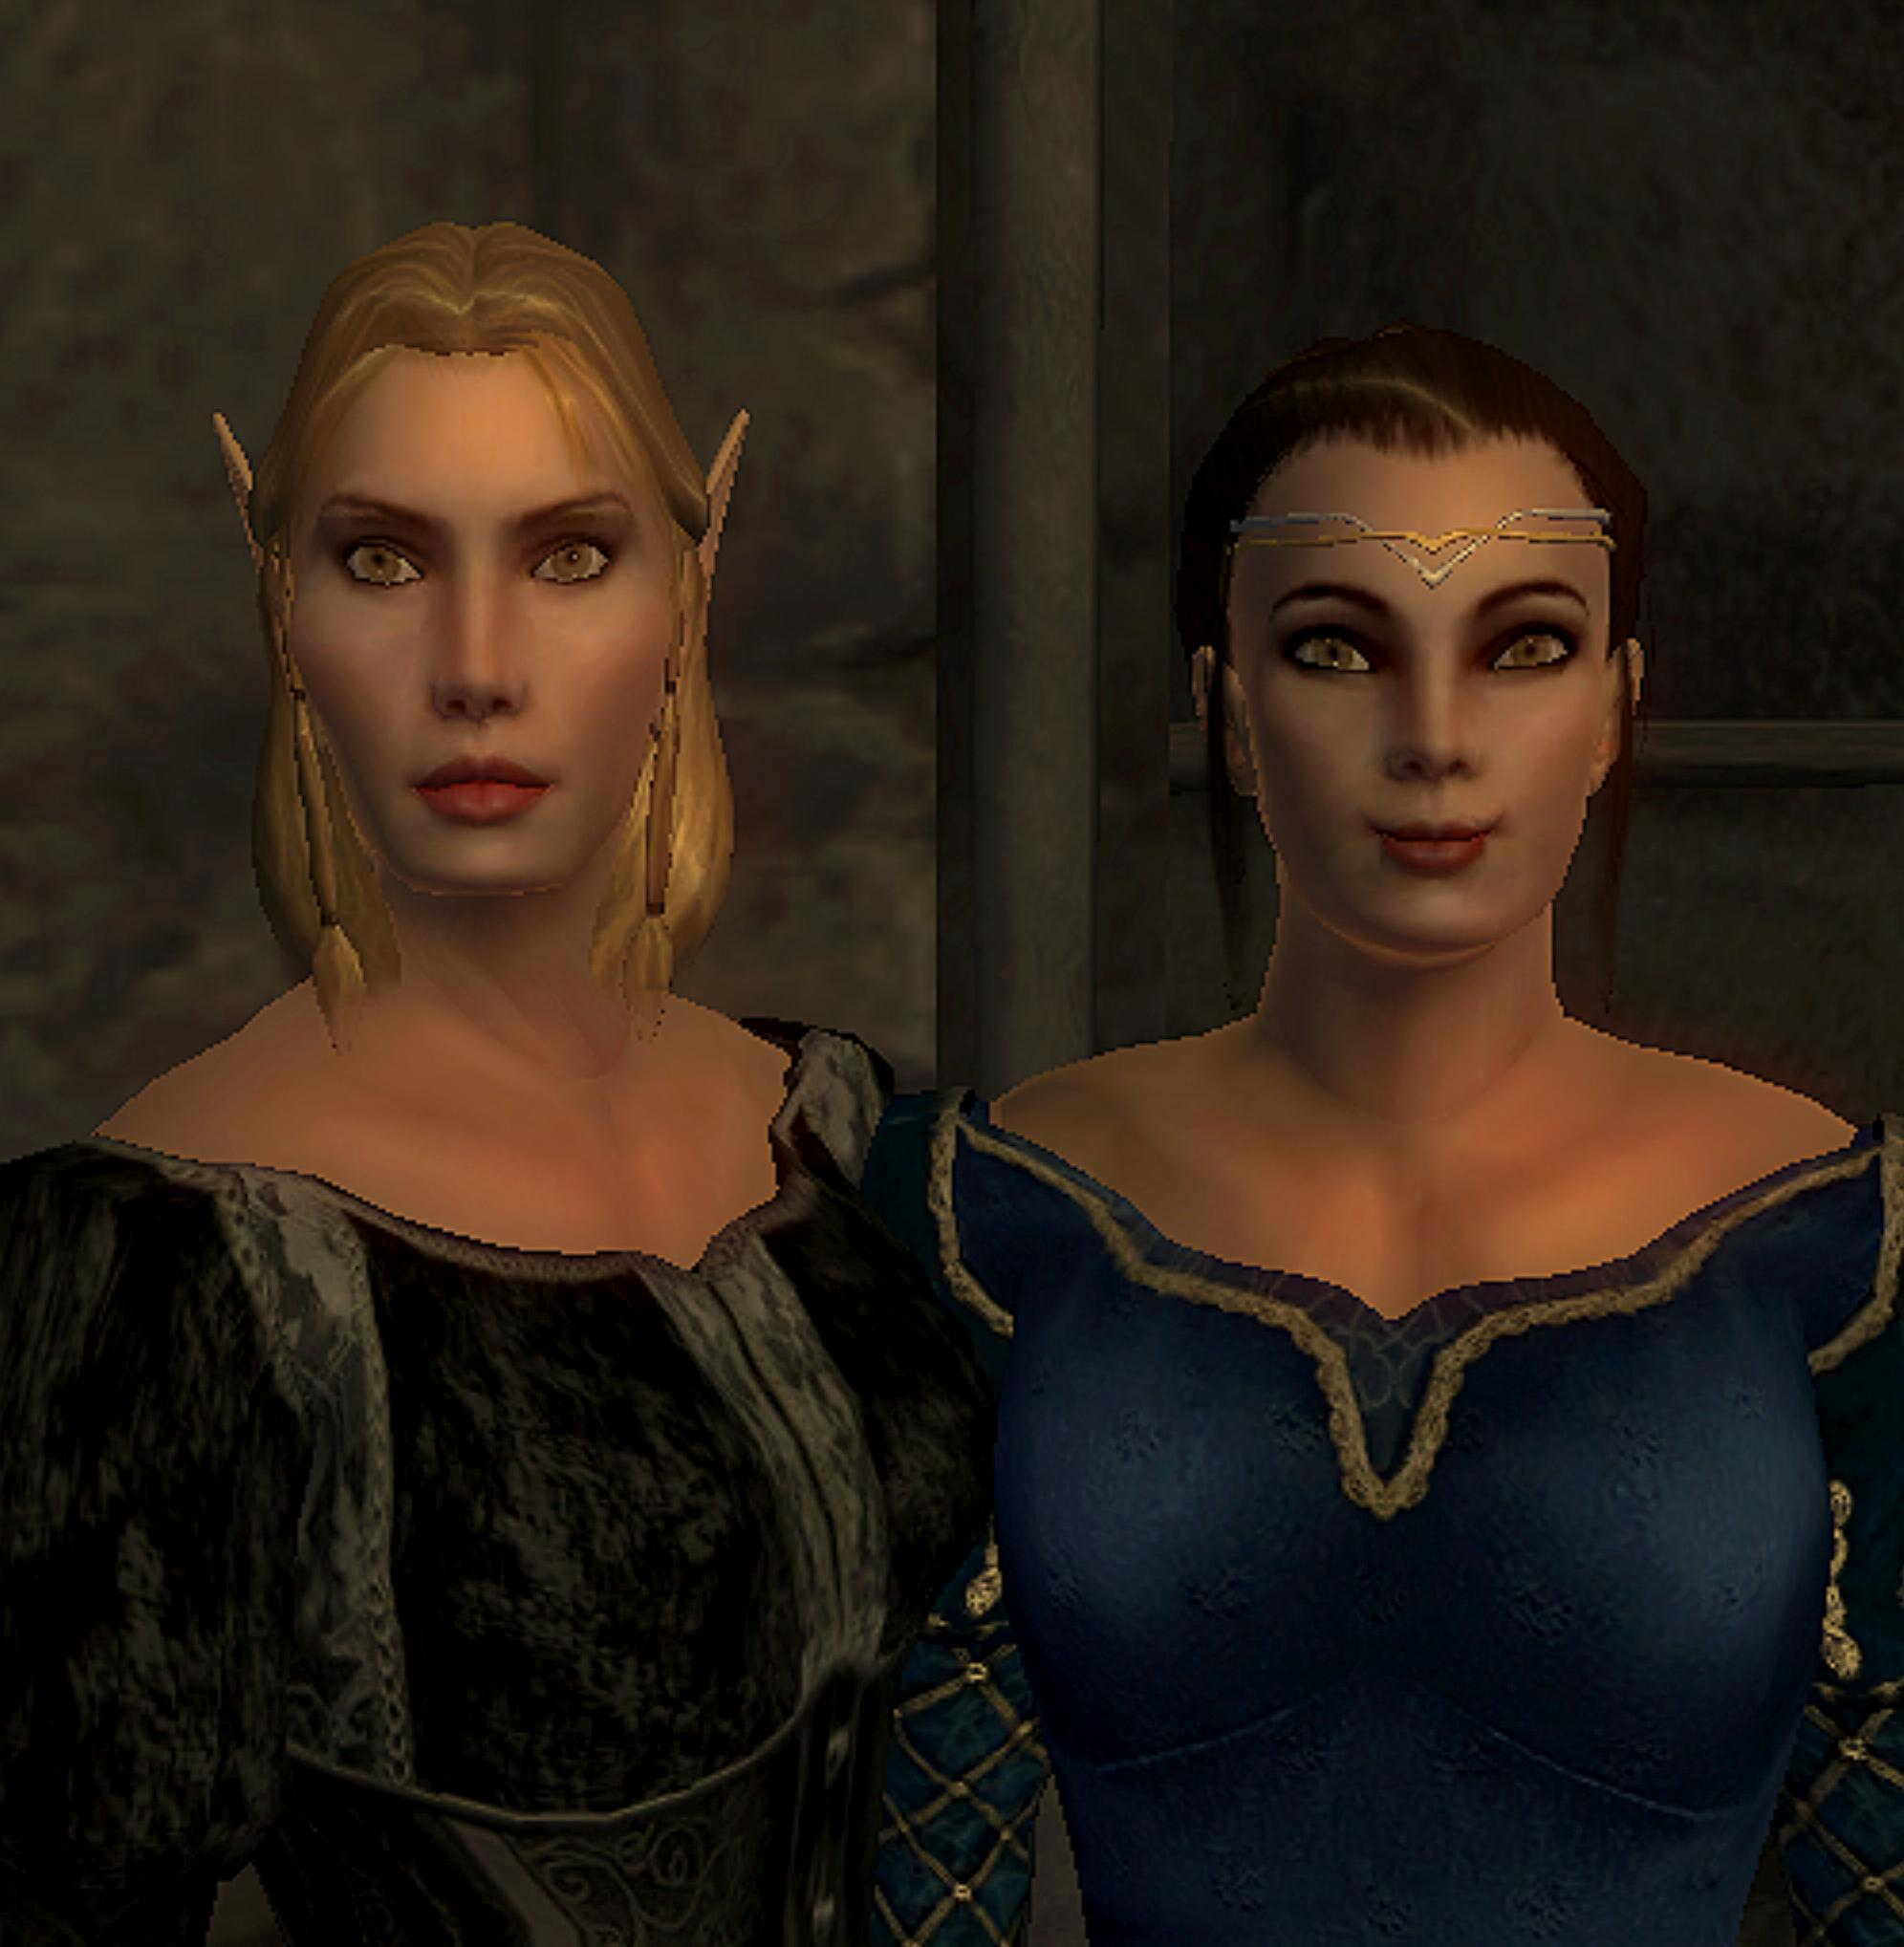 Blast from the past - Gersilla and Countess Julia